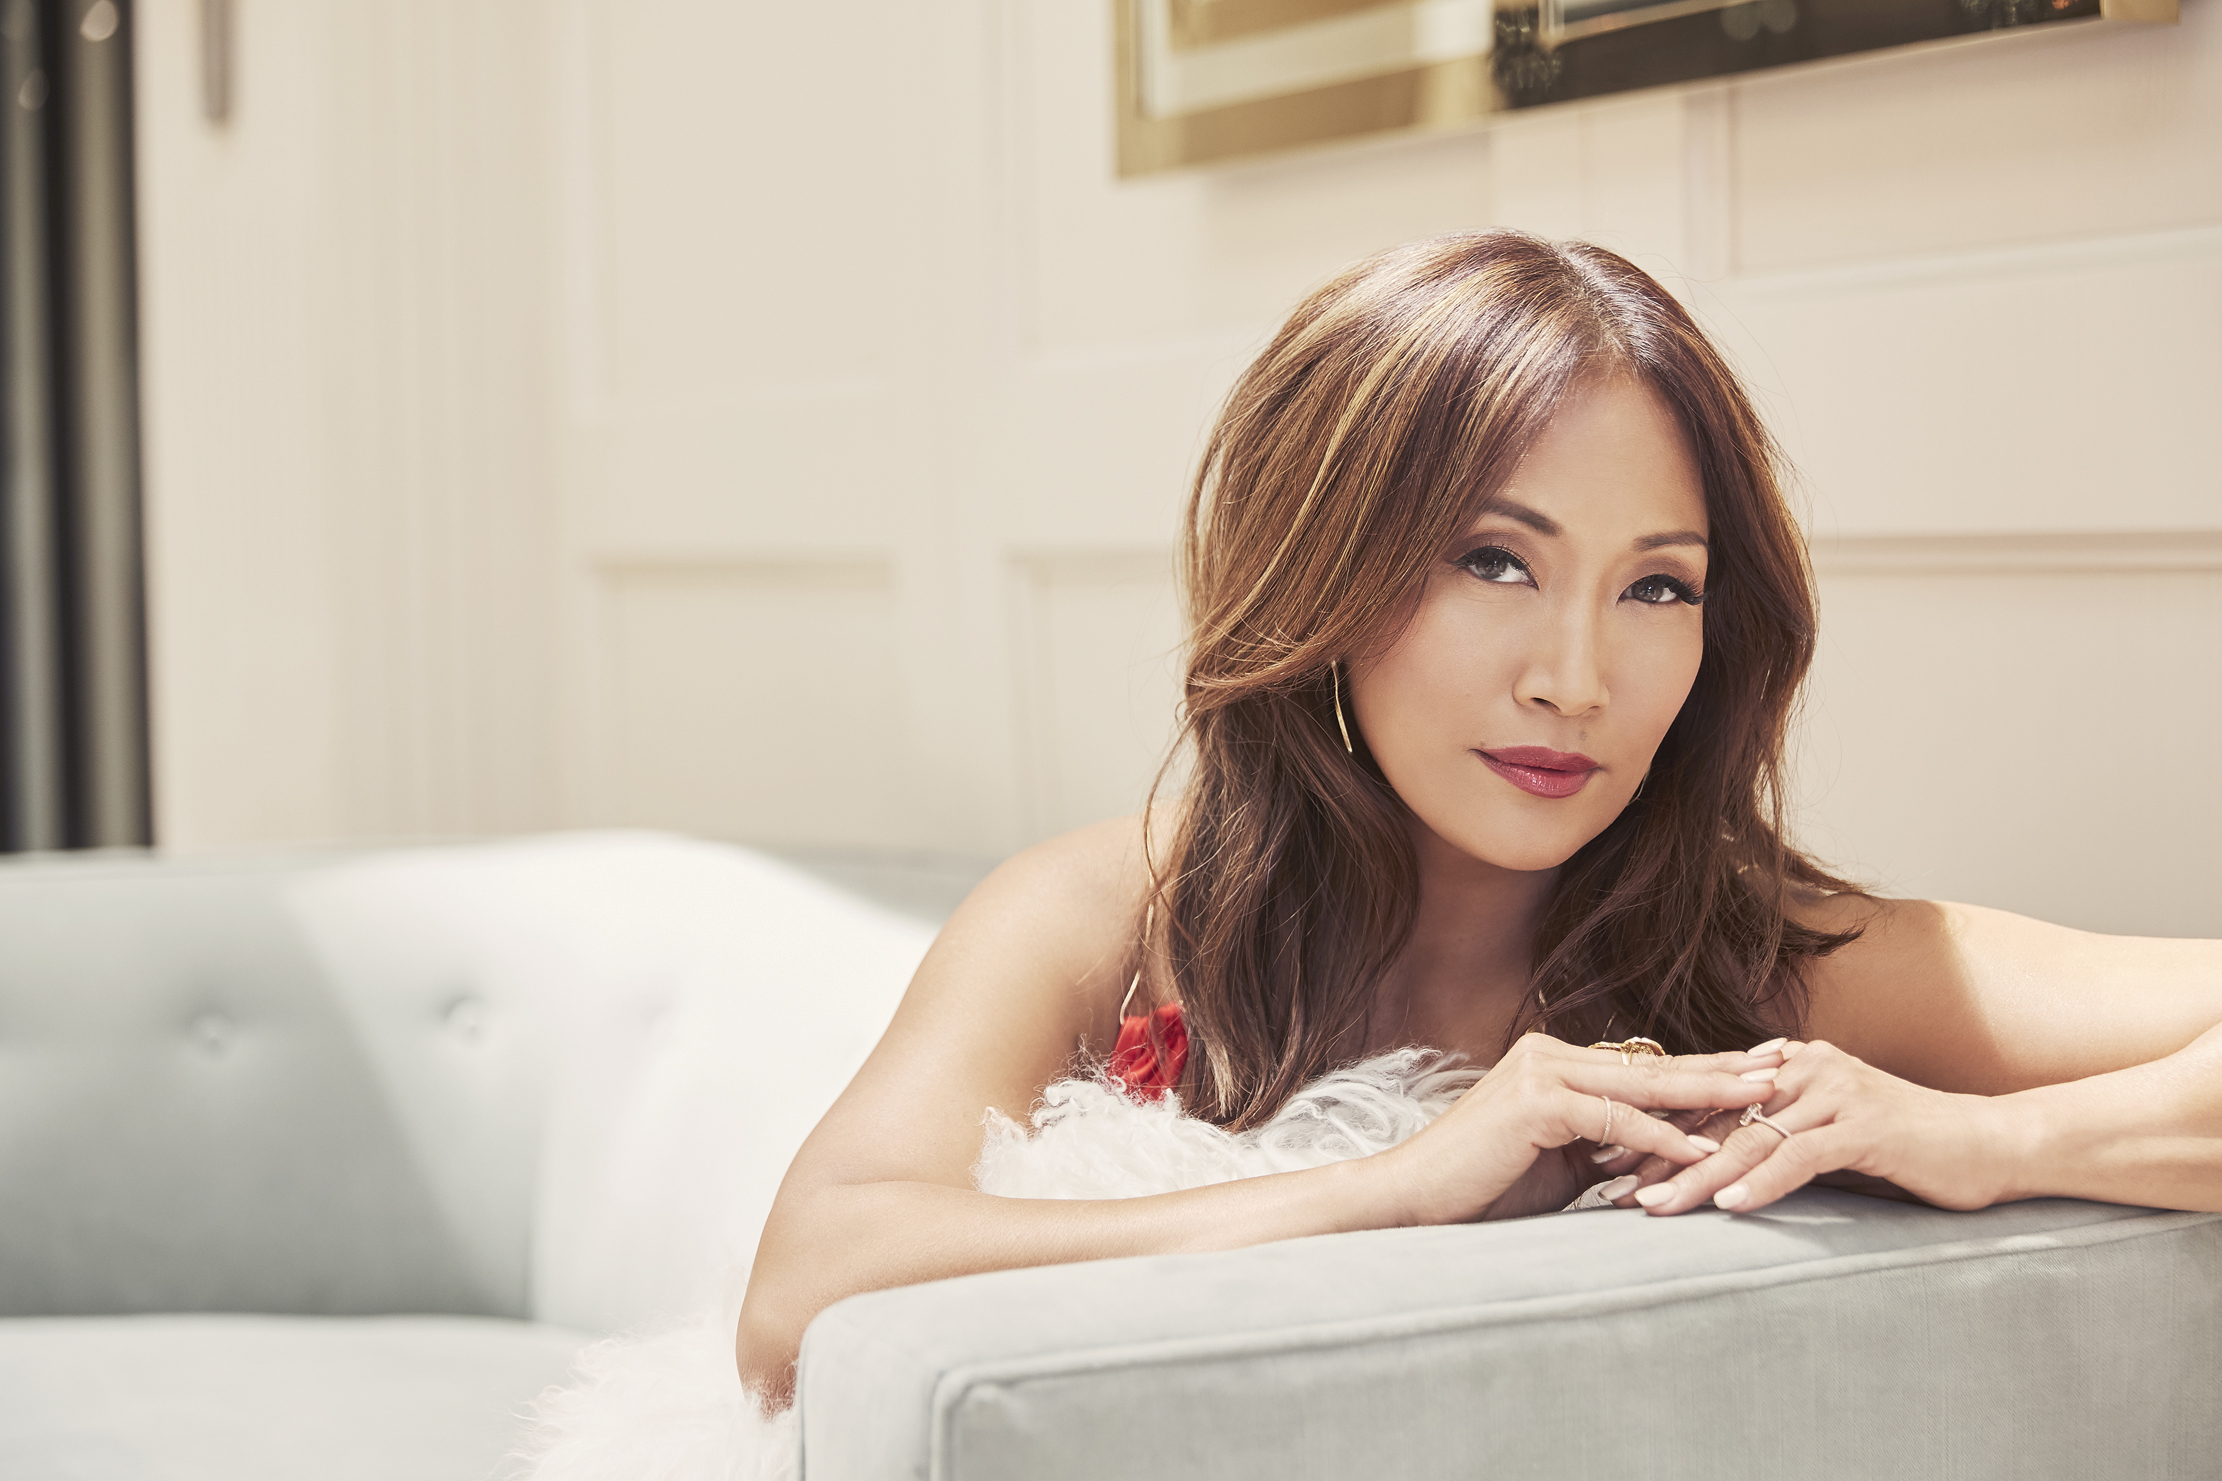 CarrieAnnInaba